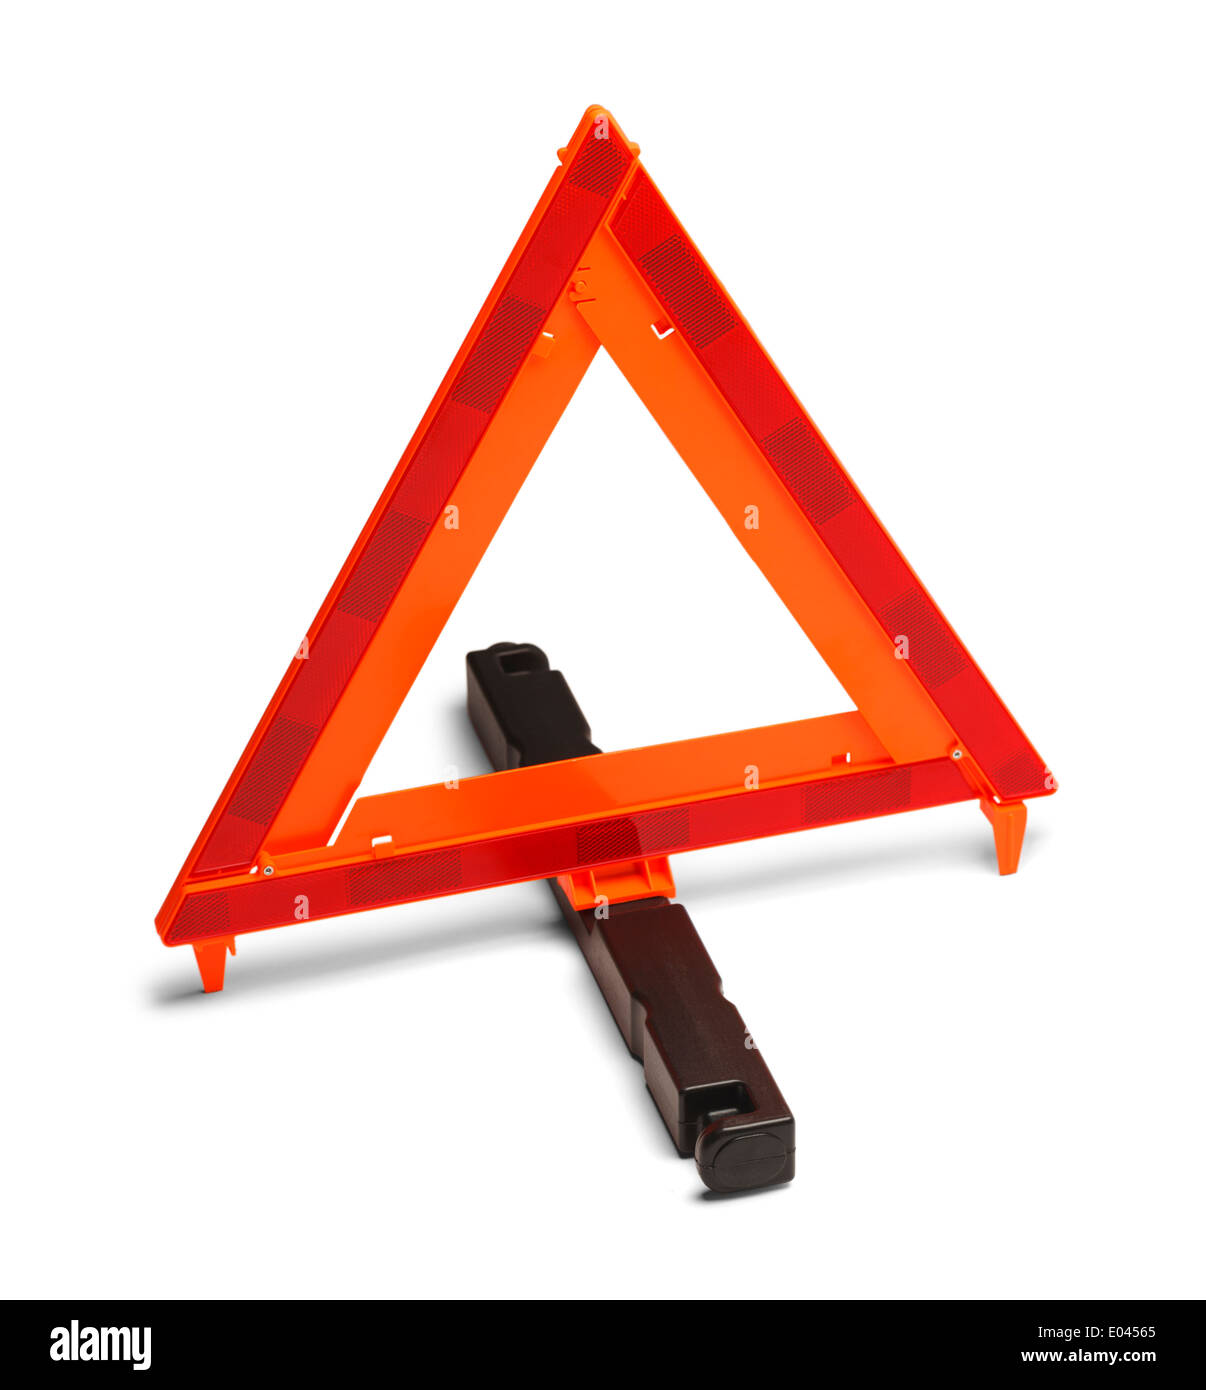 Triangle Reflector Hazard Sign. Isolated on White Background. - Stock Image